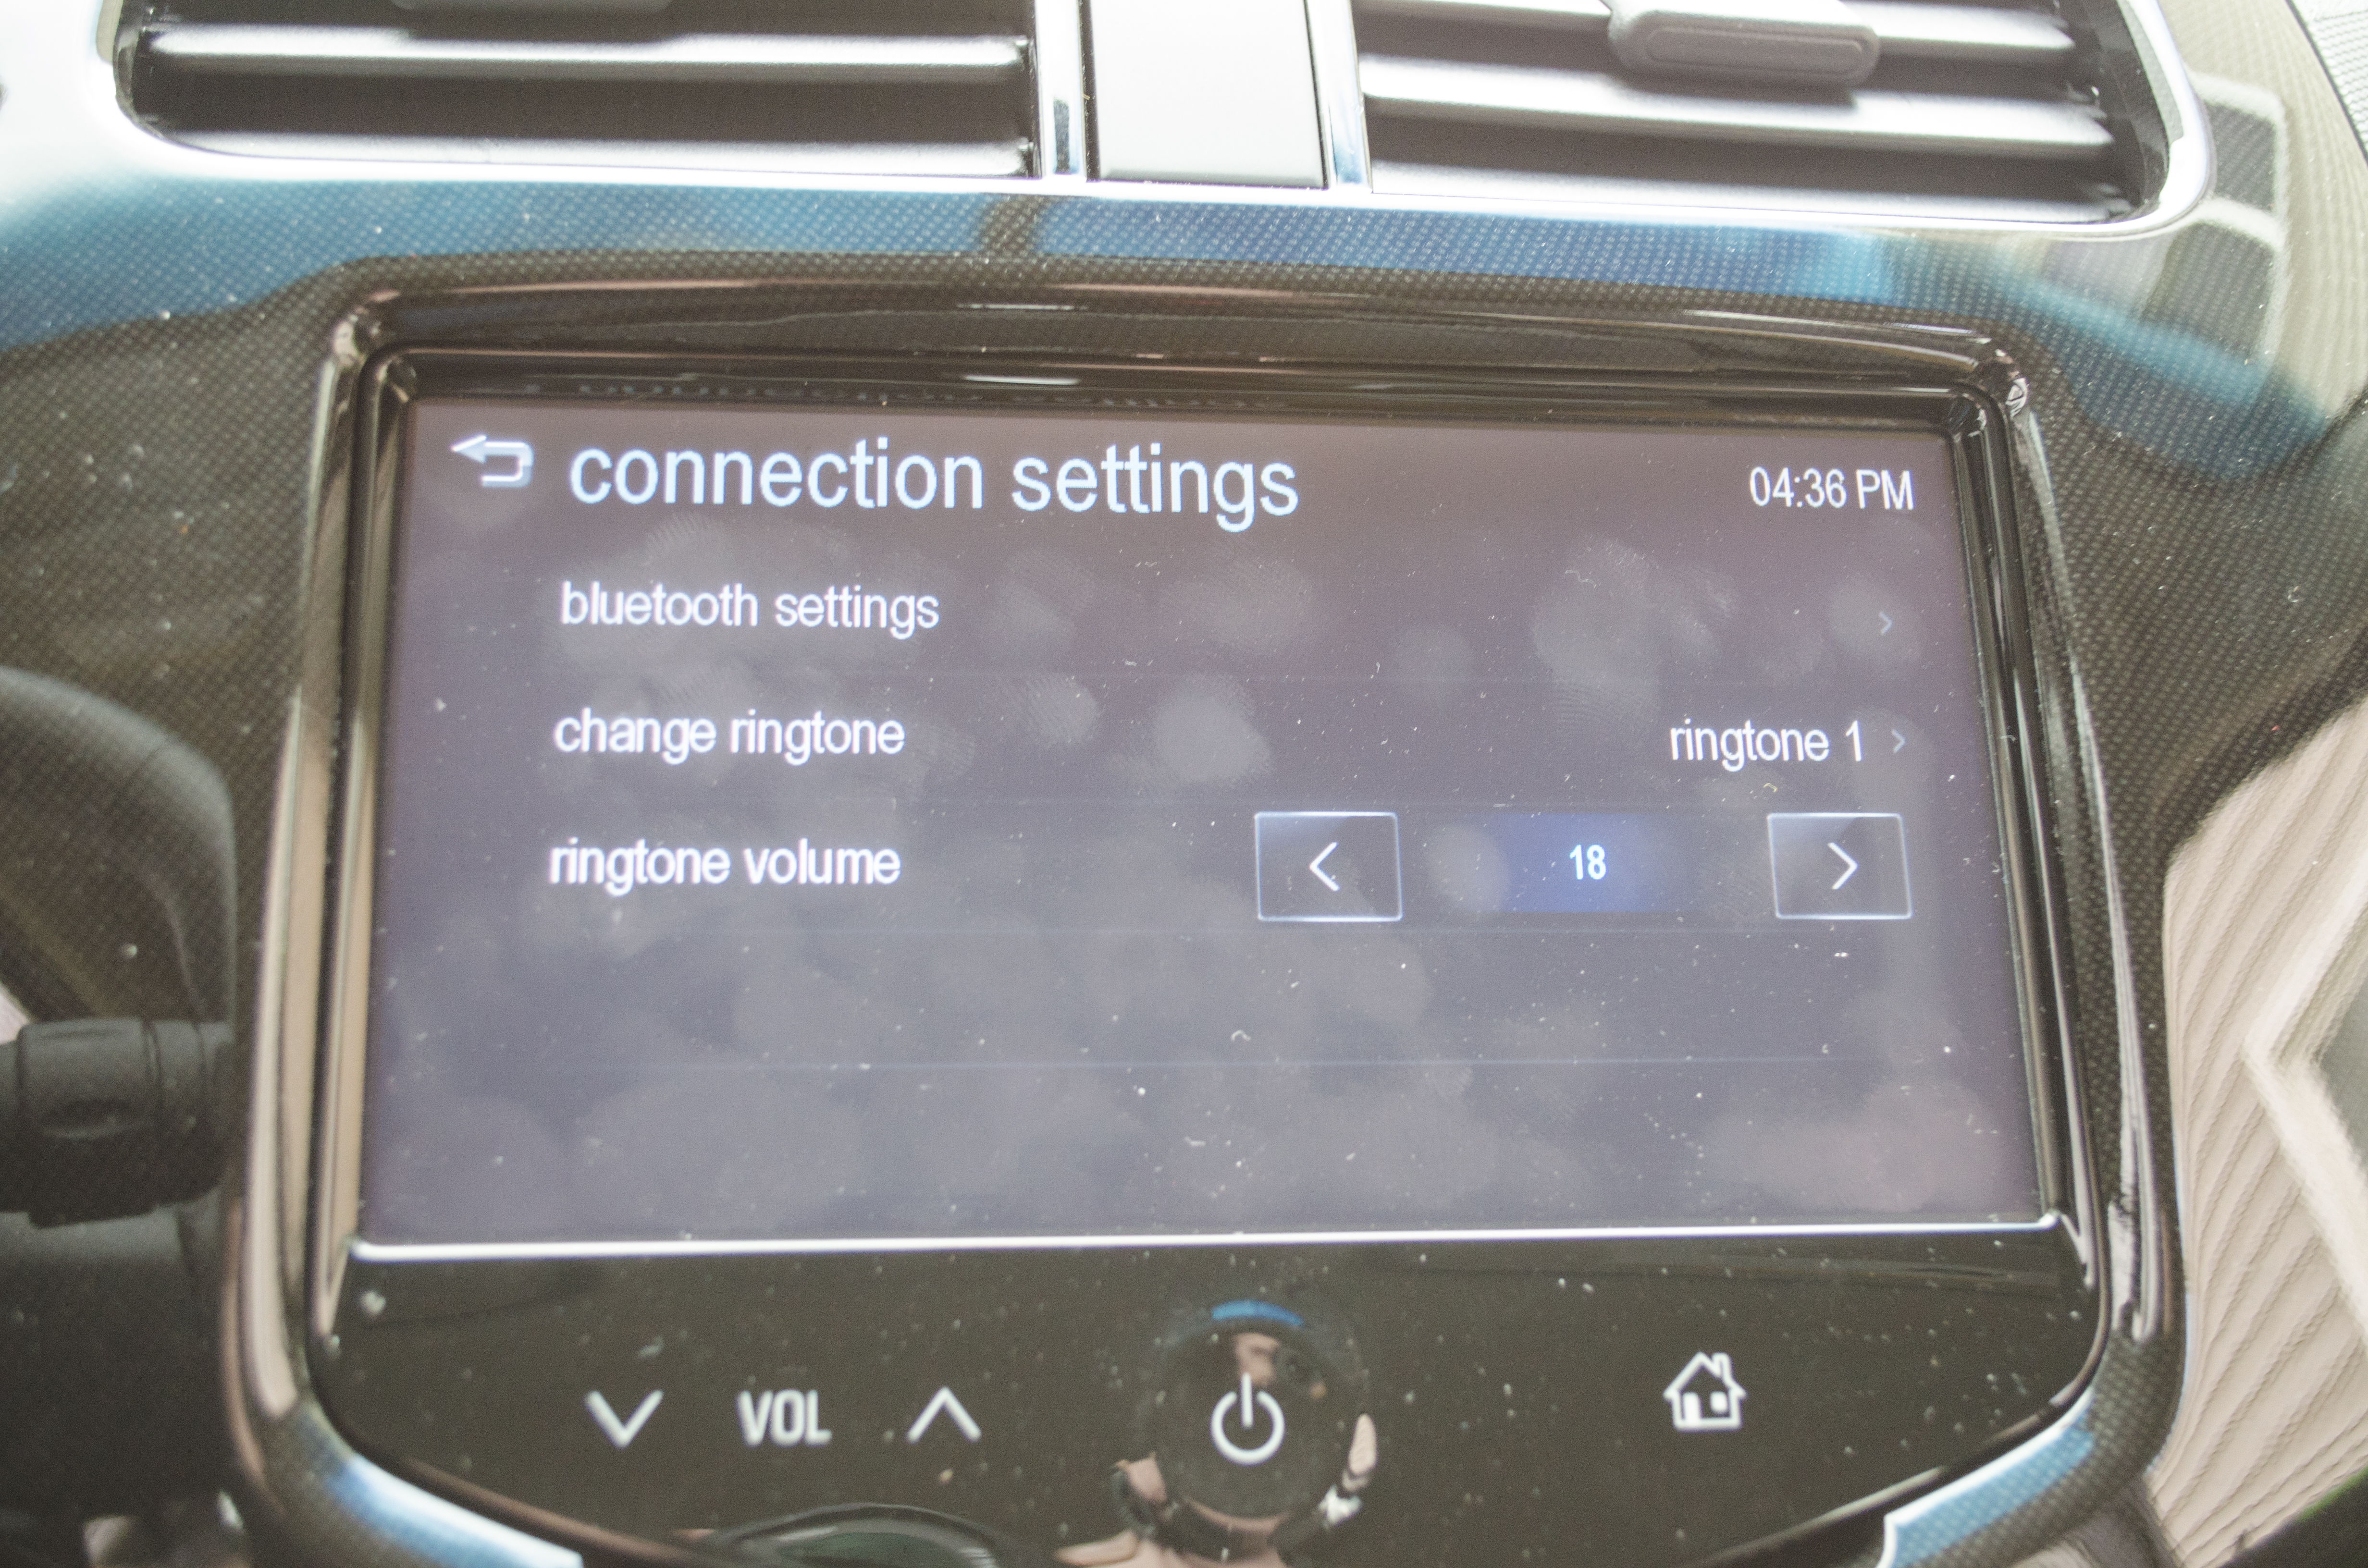 How to Connect an iPhone to Chevy MyLink - Motor Review